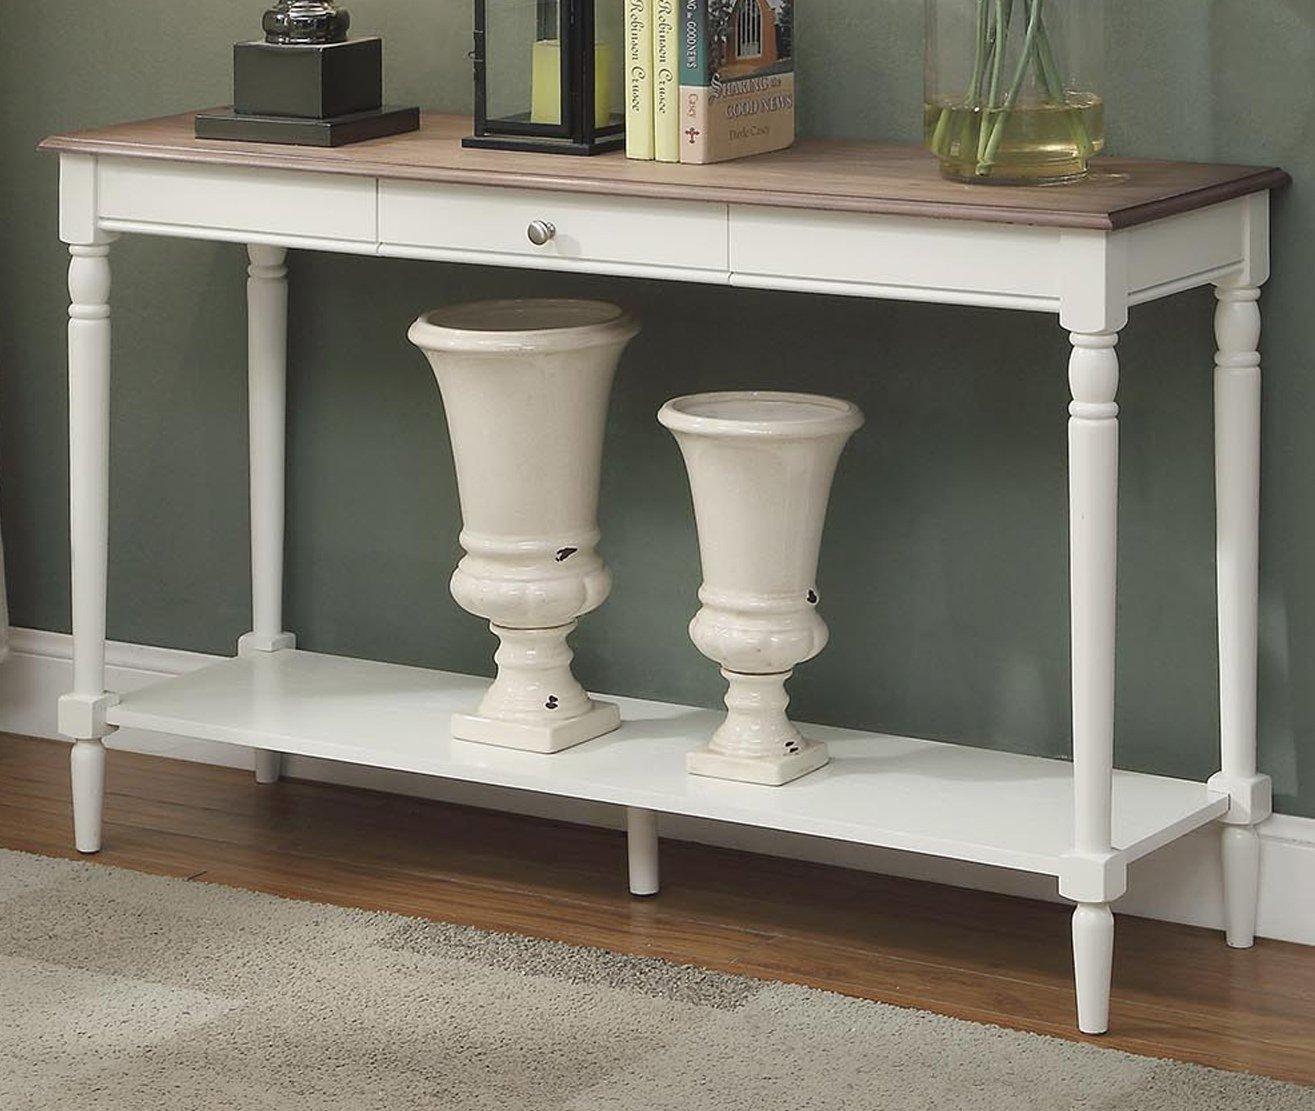 Convenience Concepts French Country Console Table with Drawer and Shelf, Driftwood / White by Convenience Concepts